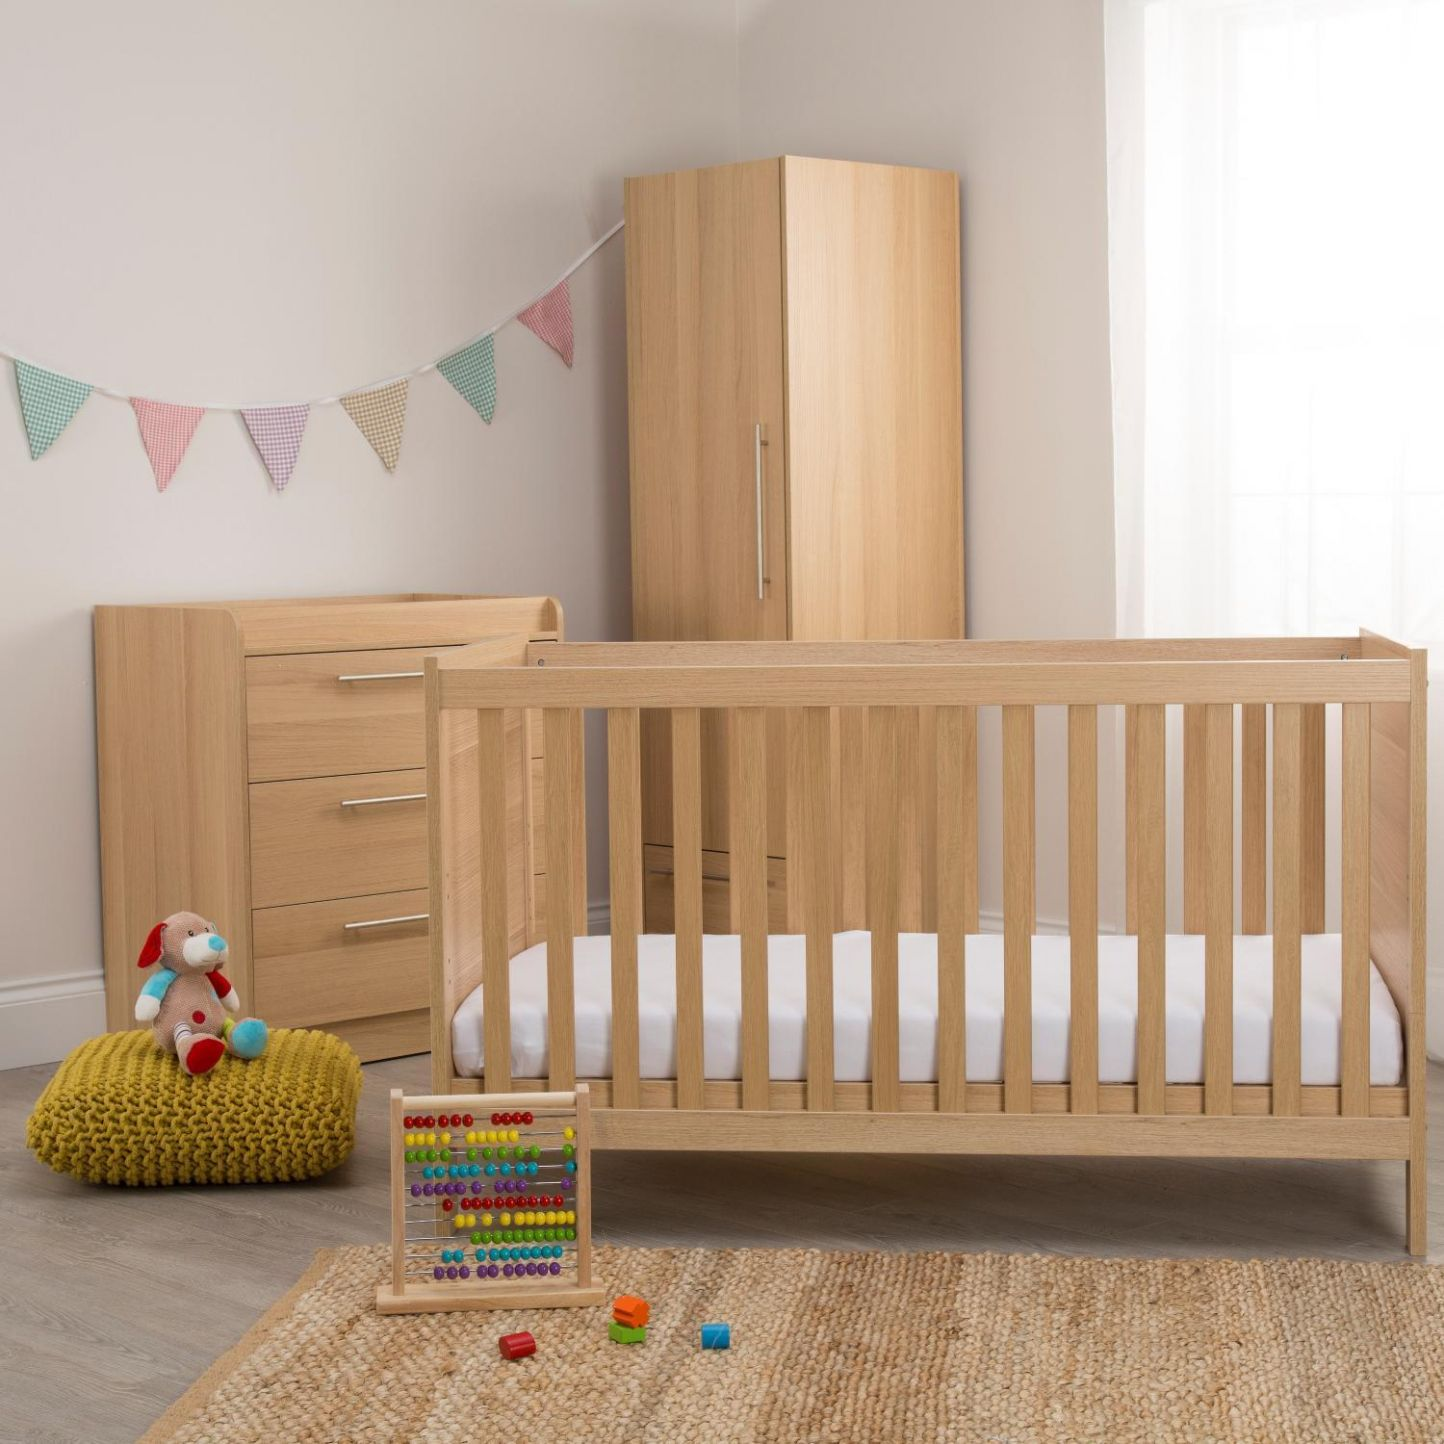 Beau Baby Furniture Free   Neutral Interior Paint Colors Check More At Http://www